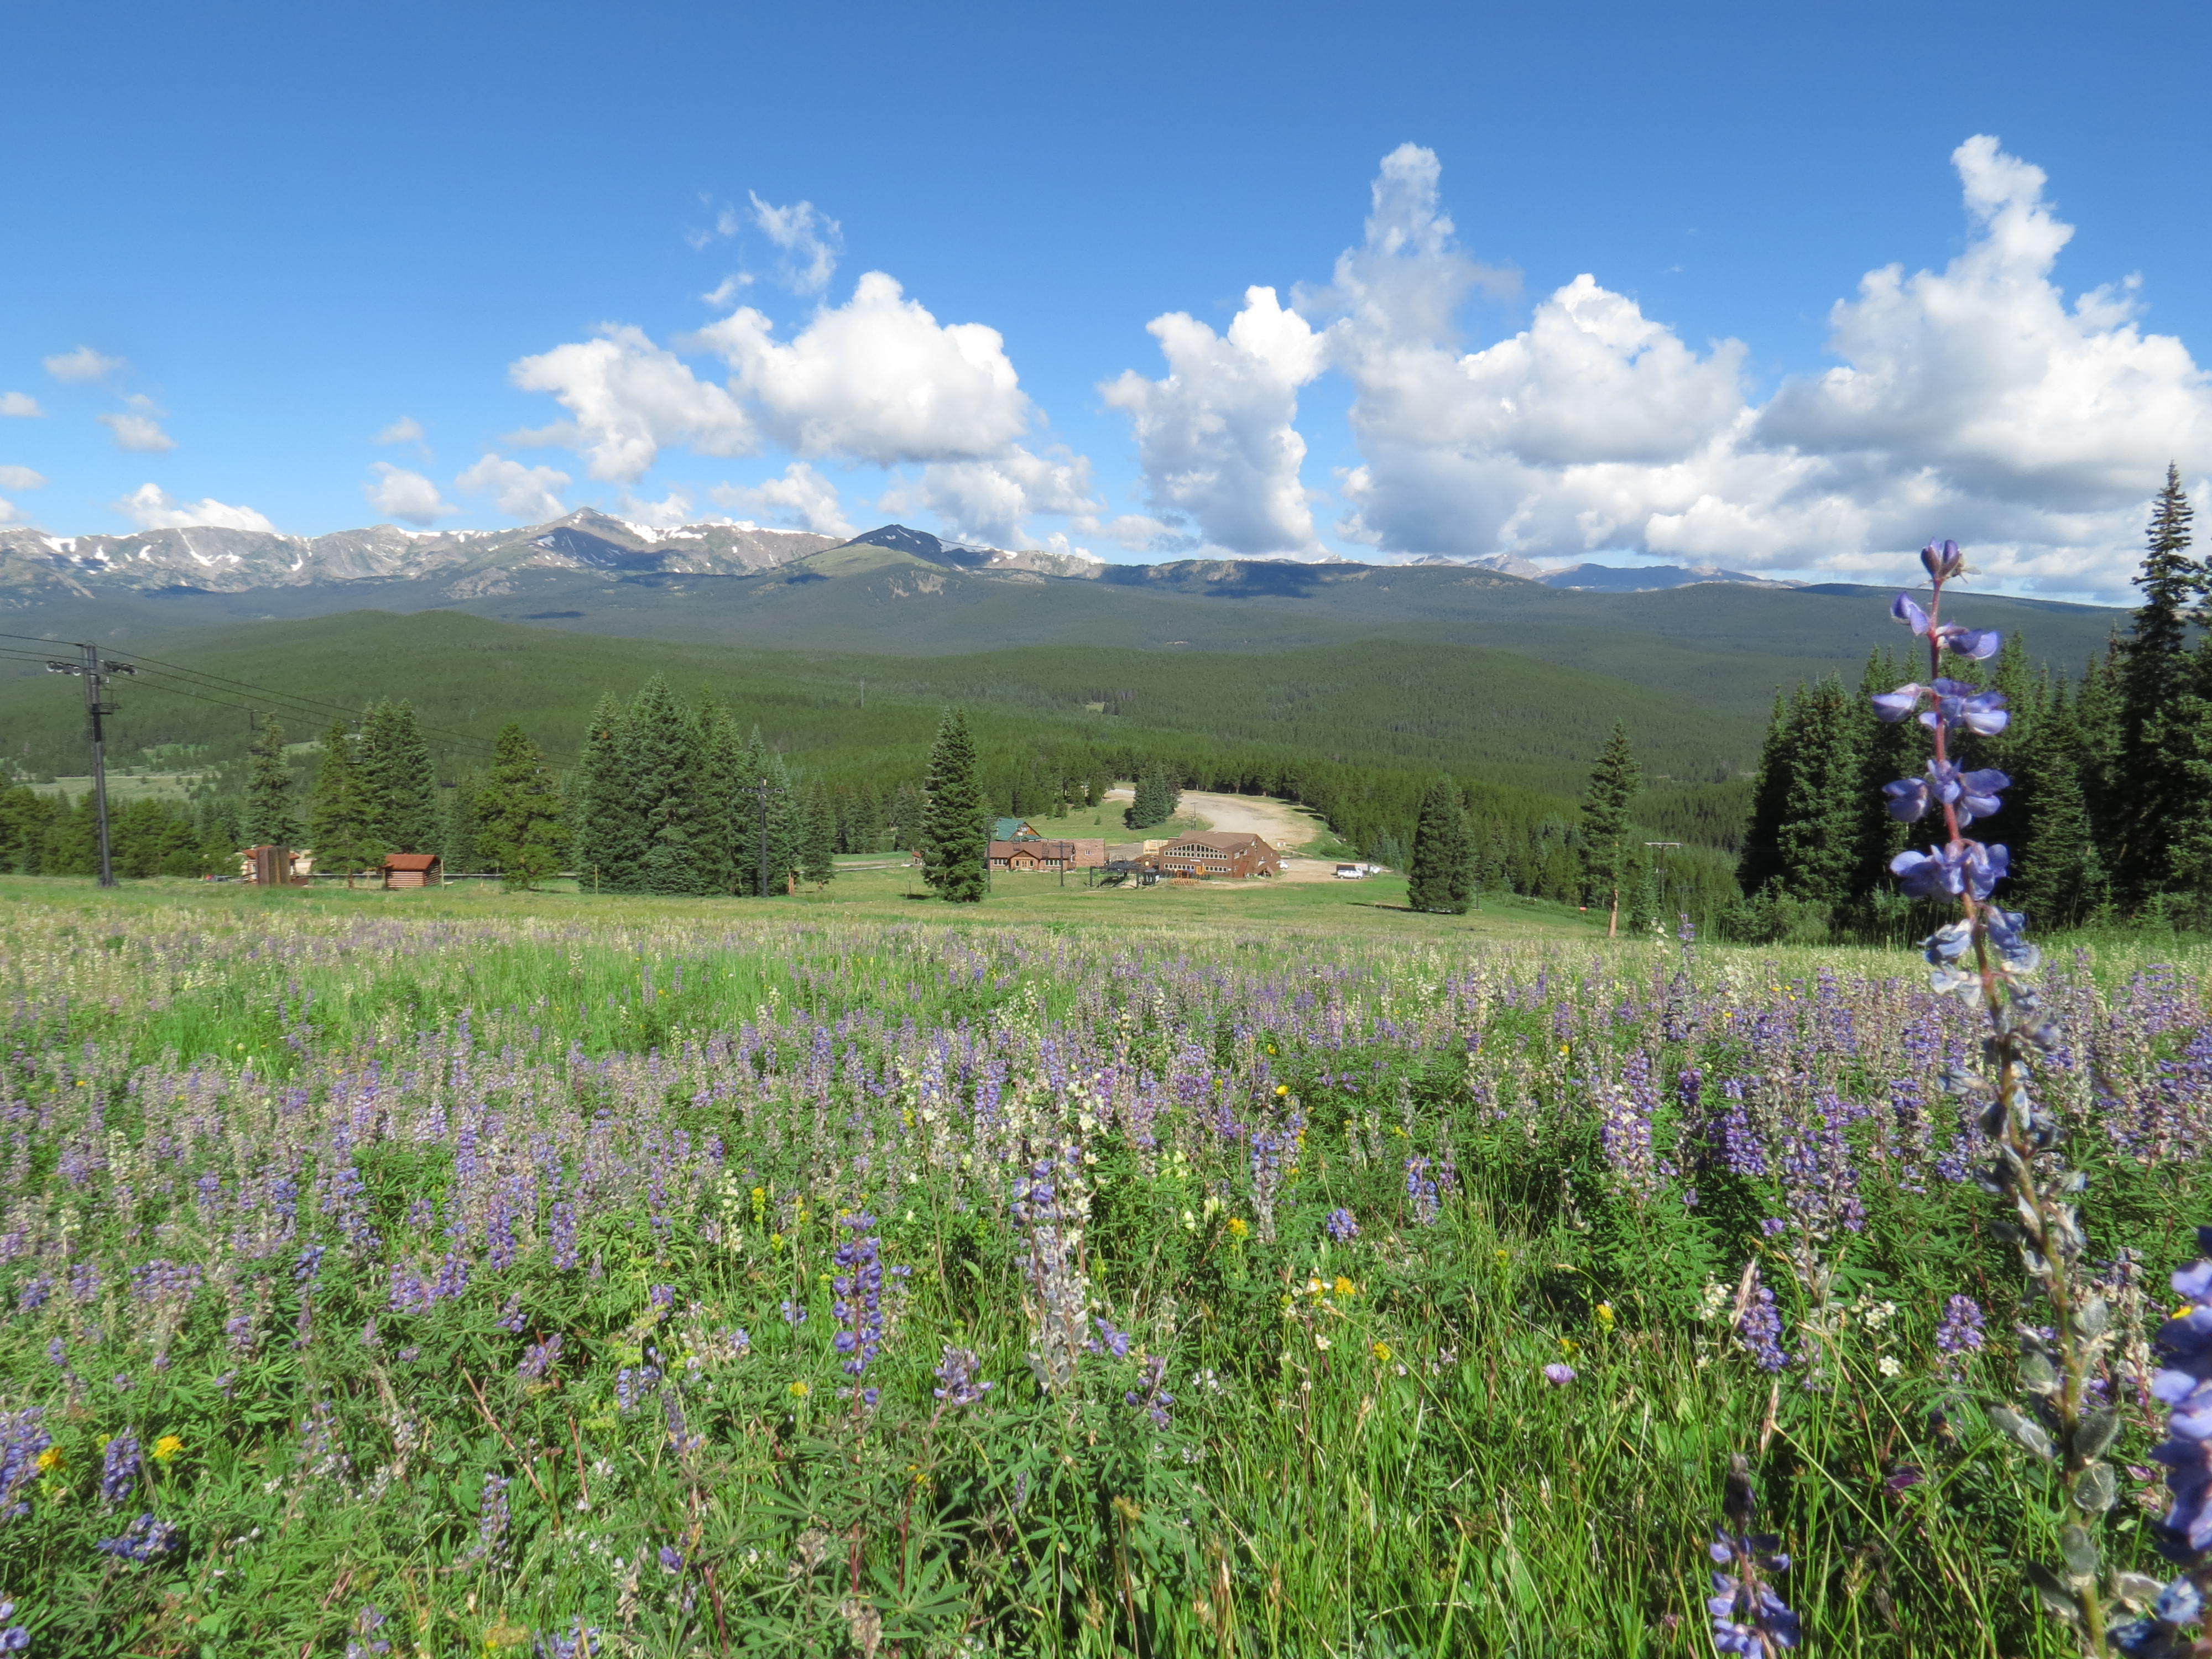 Cooper lodge with wildflowers in the foreground